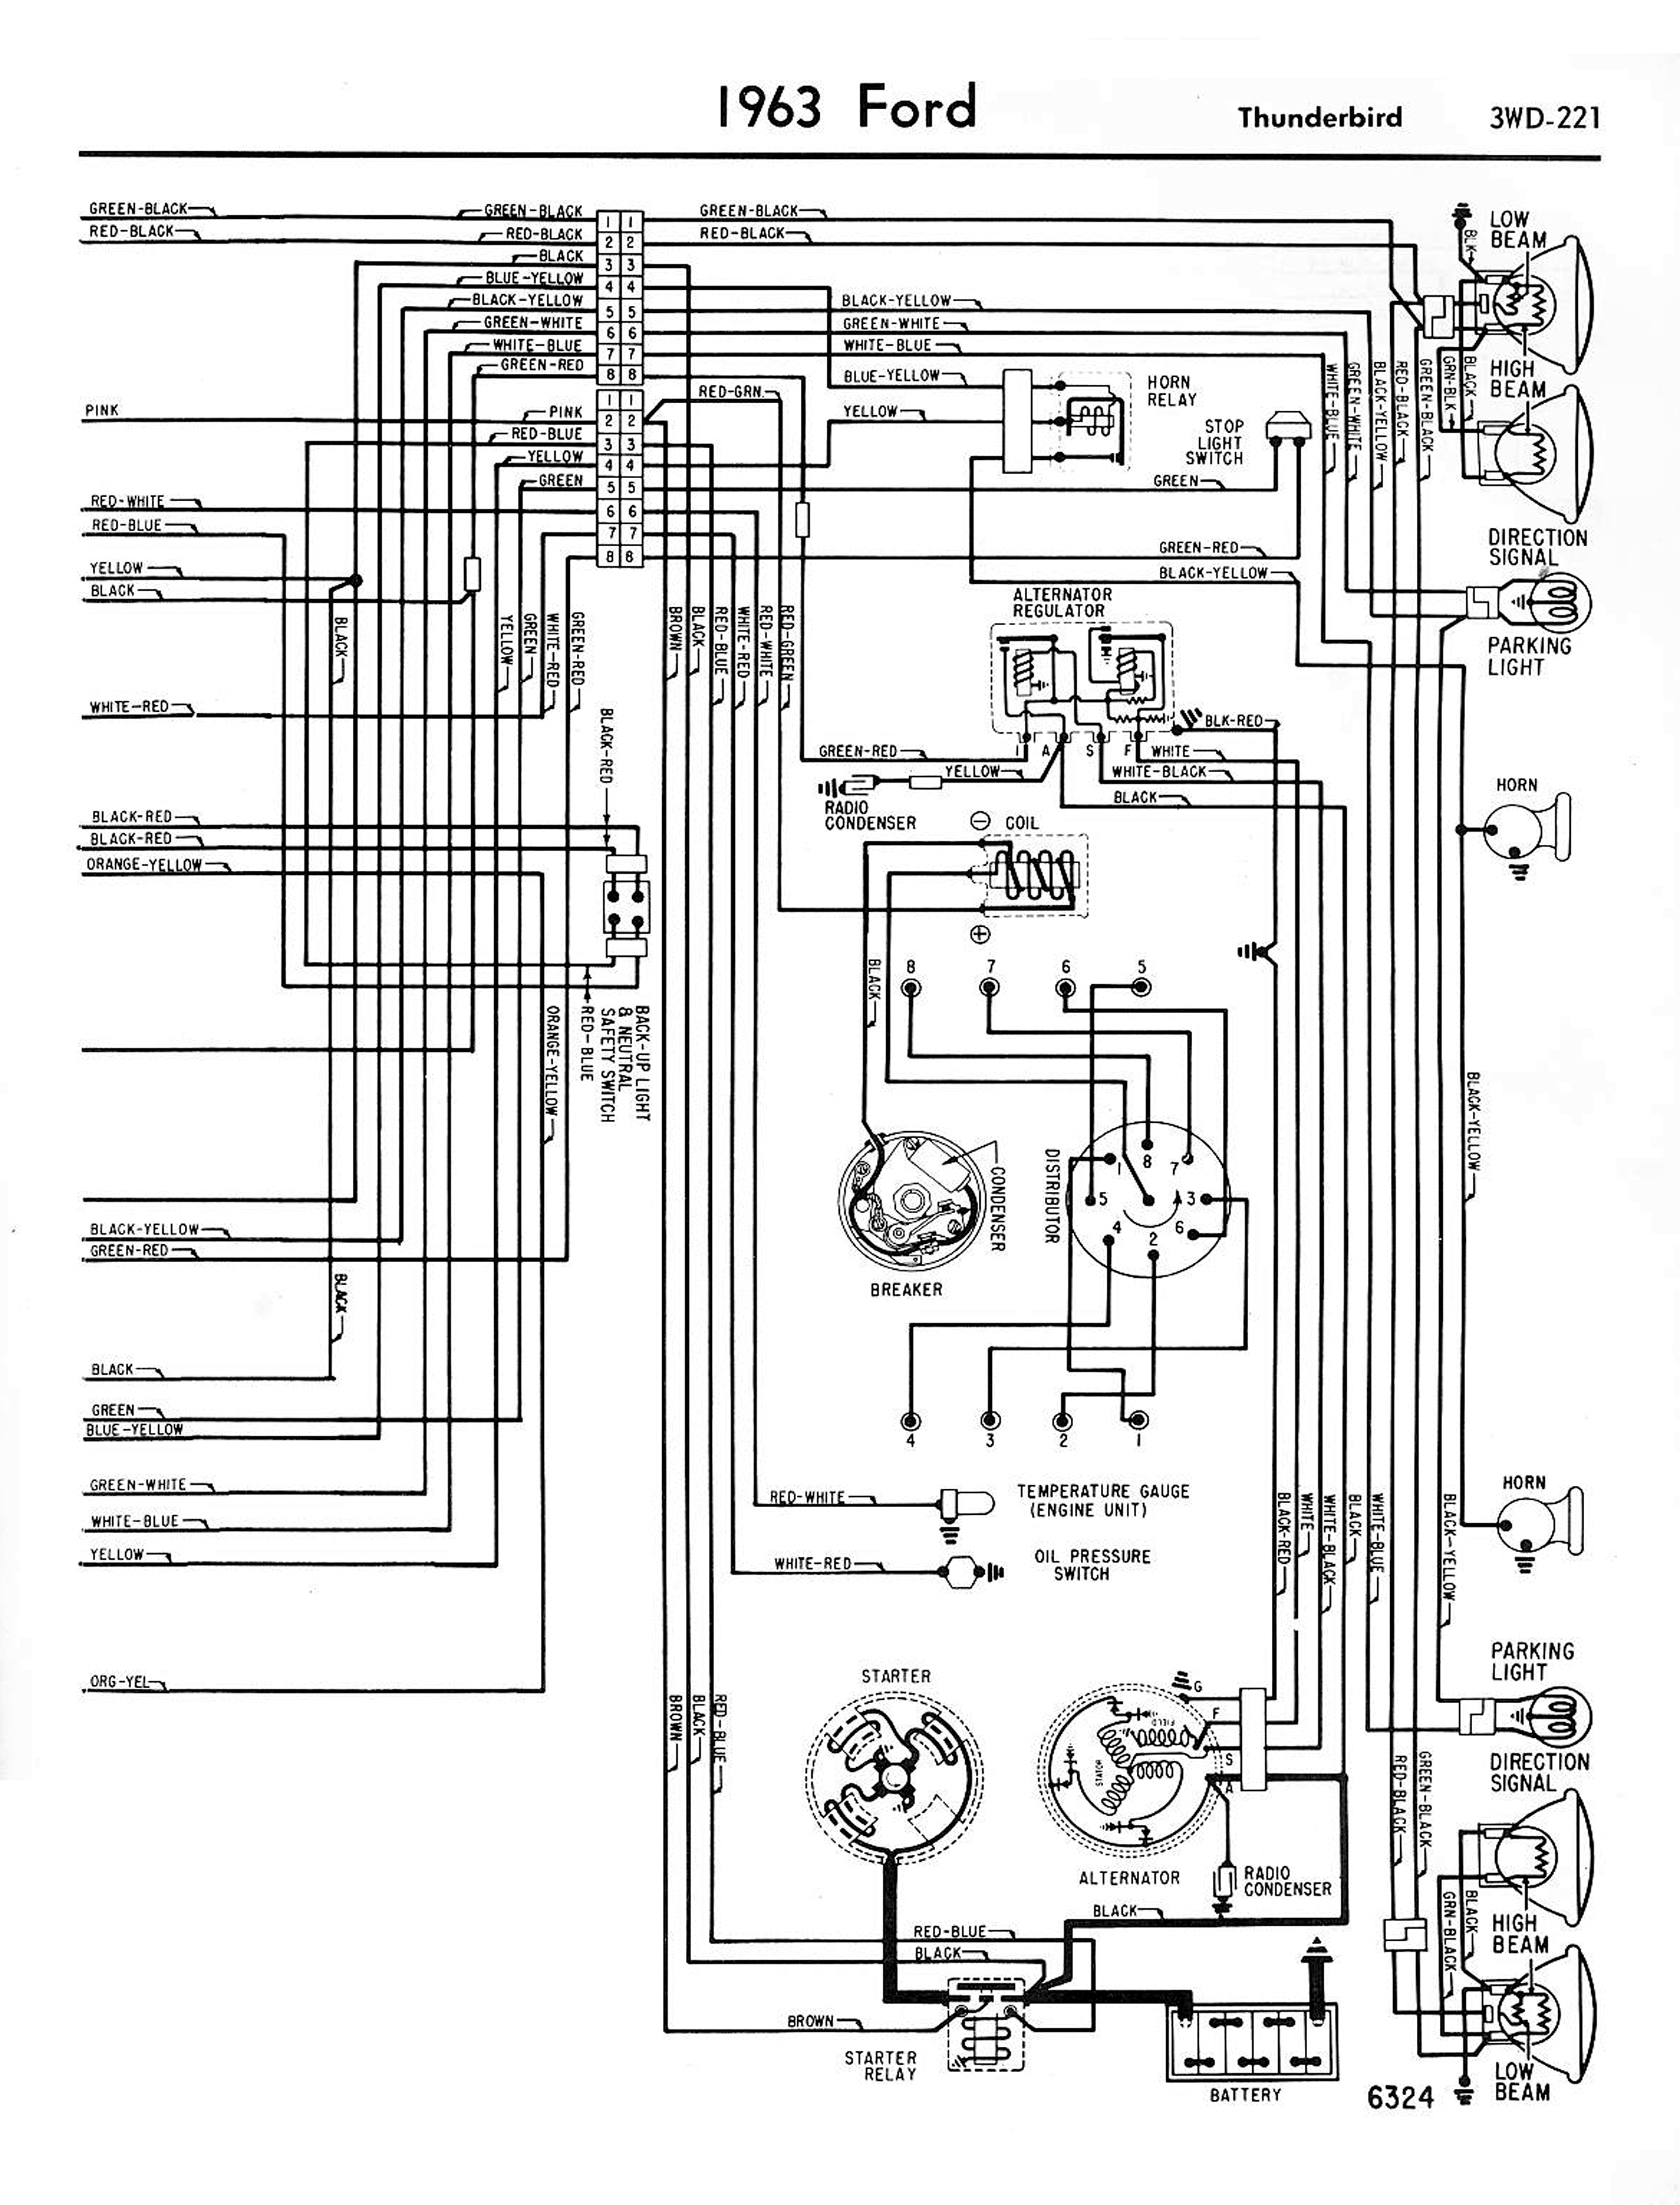 the wiring diagram from the ford shop manual is a little hard to